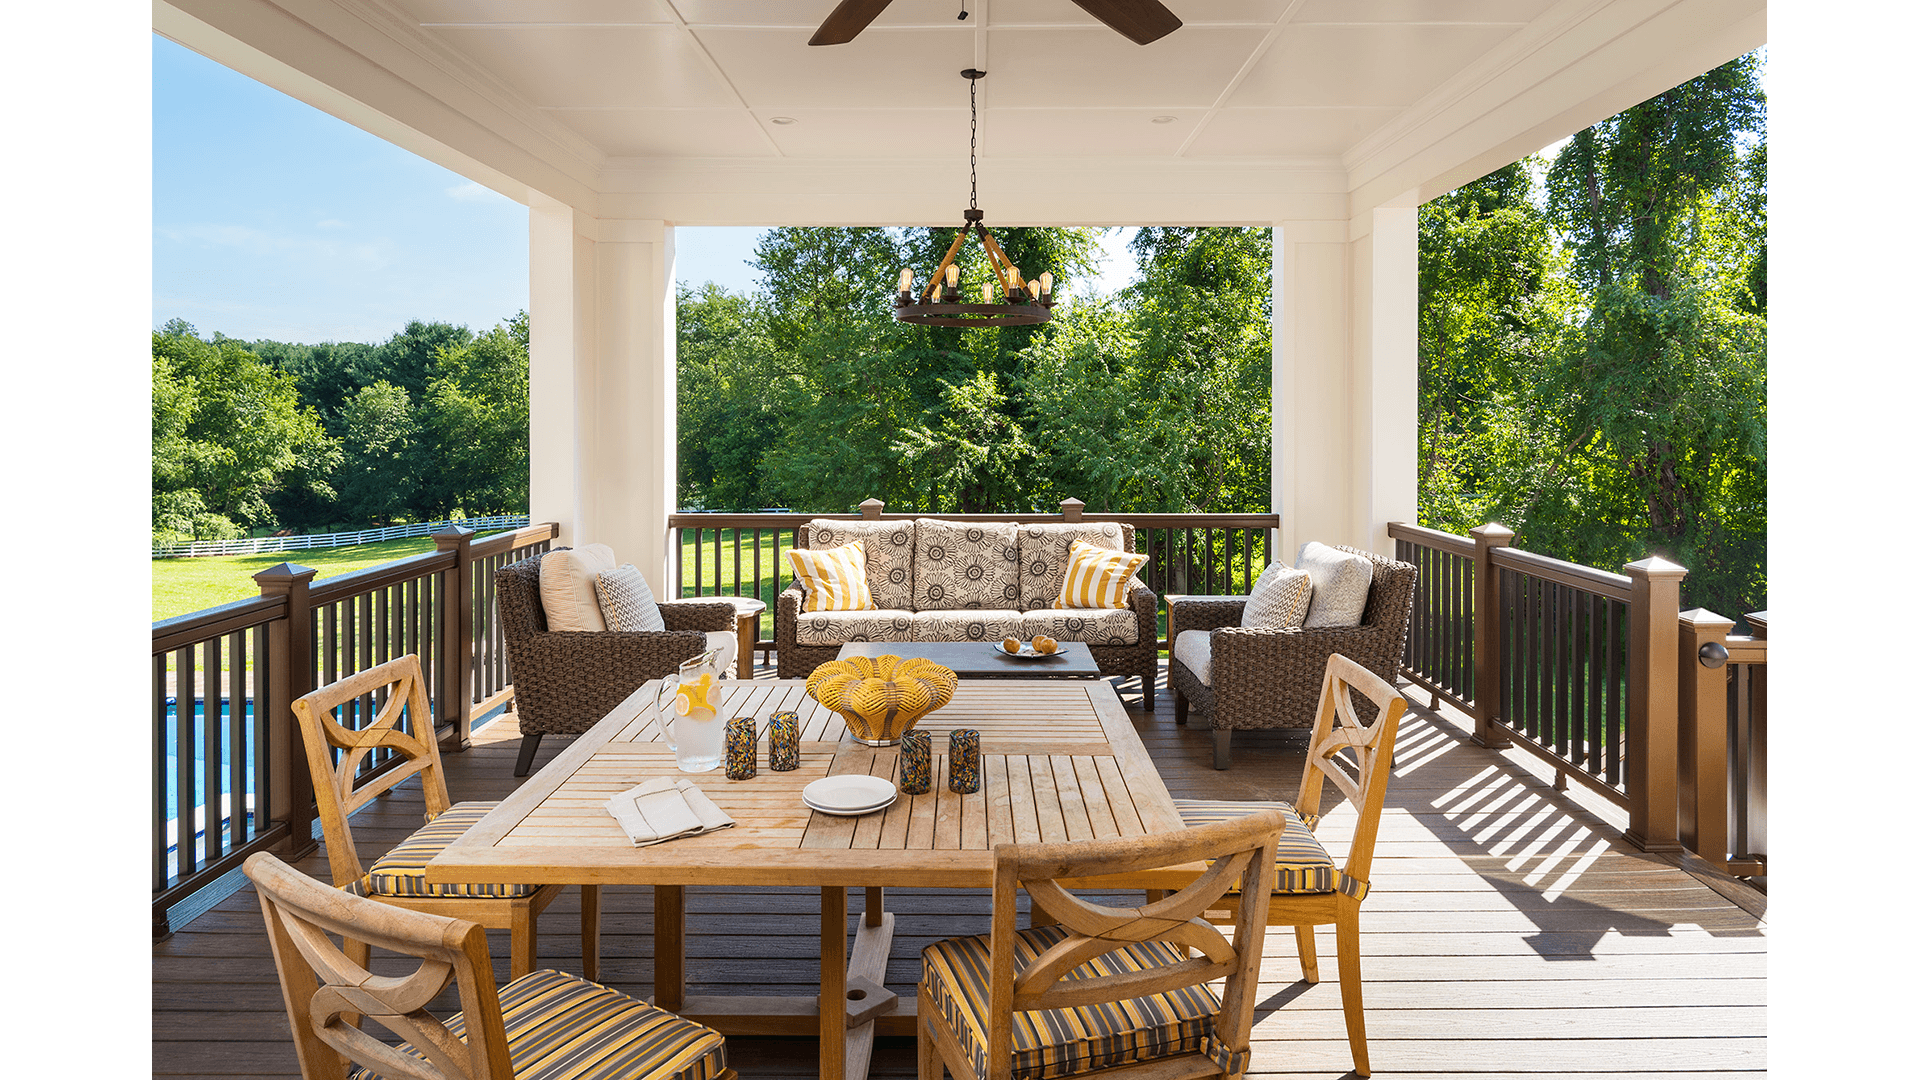 The Custom Lanai in a Gulick | One home on Innsbruck Avenue. © Hoachlander-Davis Photography. All Rights Reserved. Used with Permission.